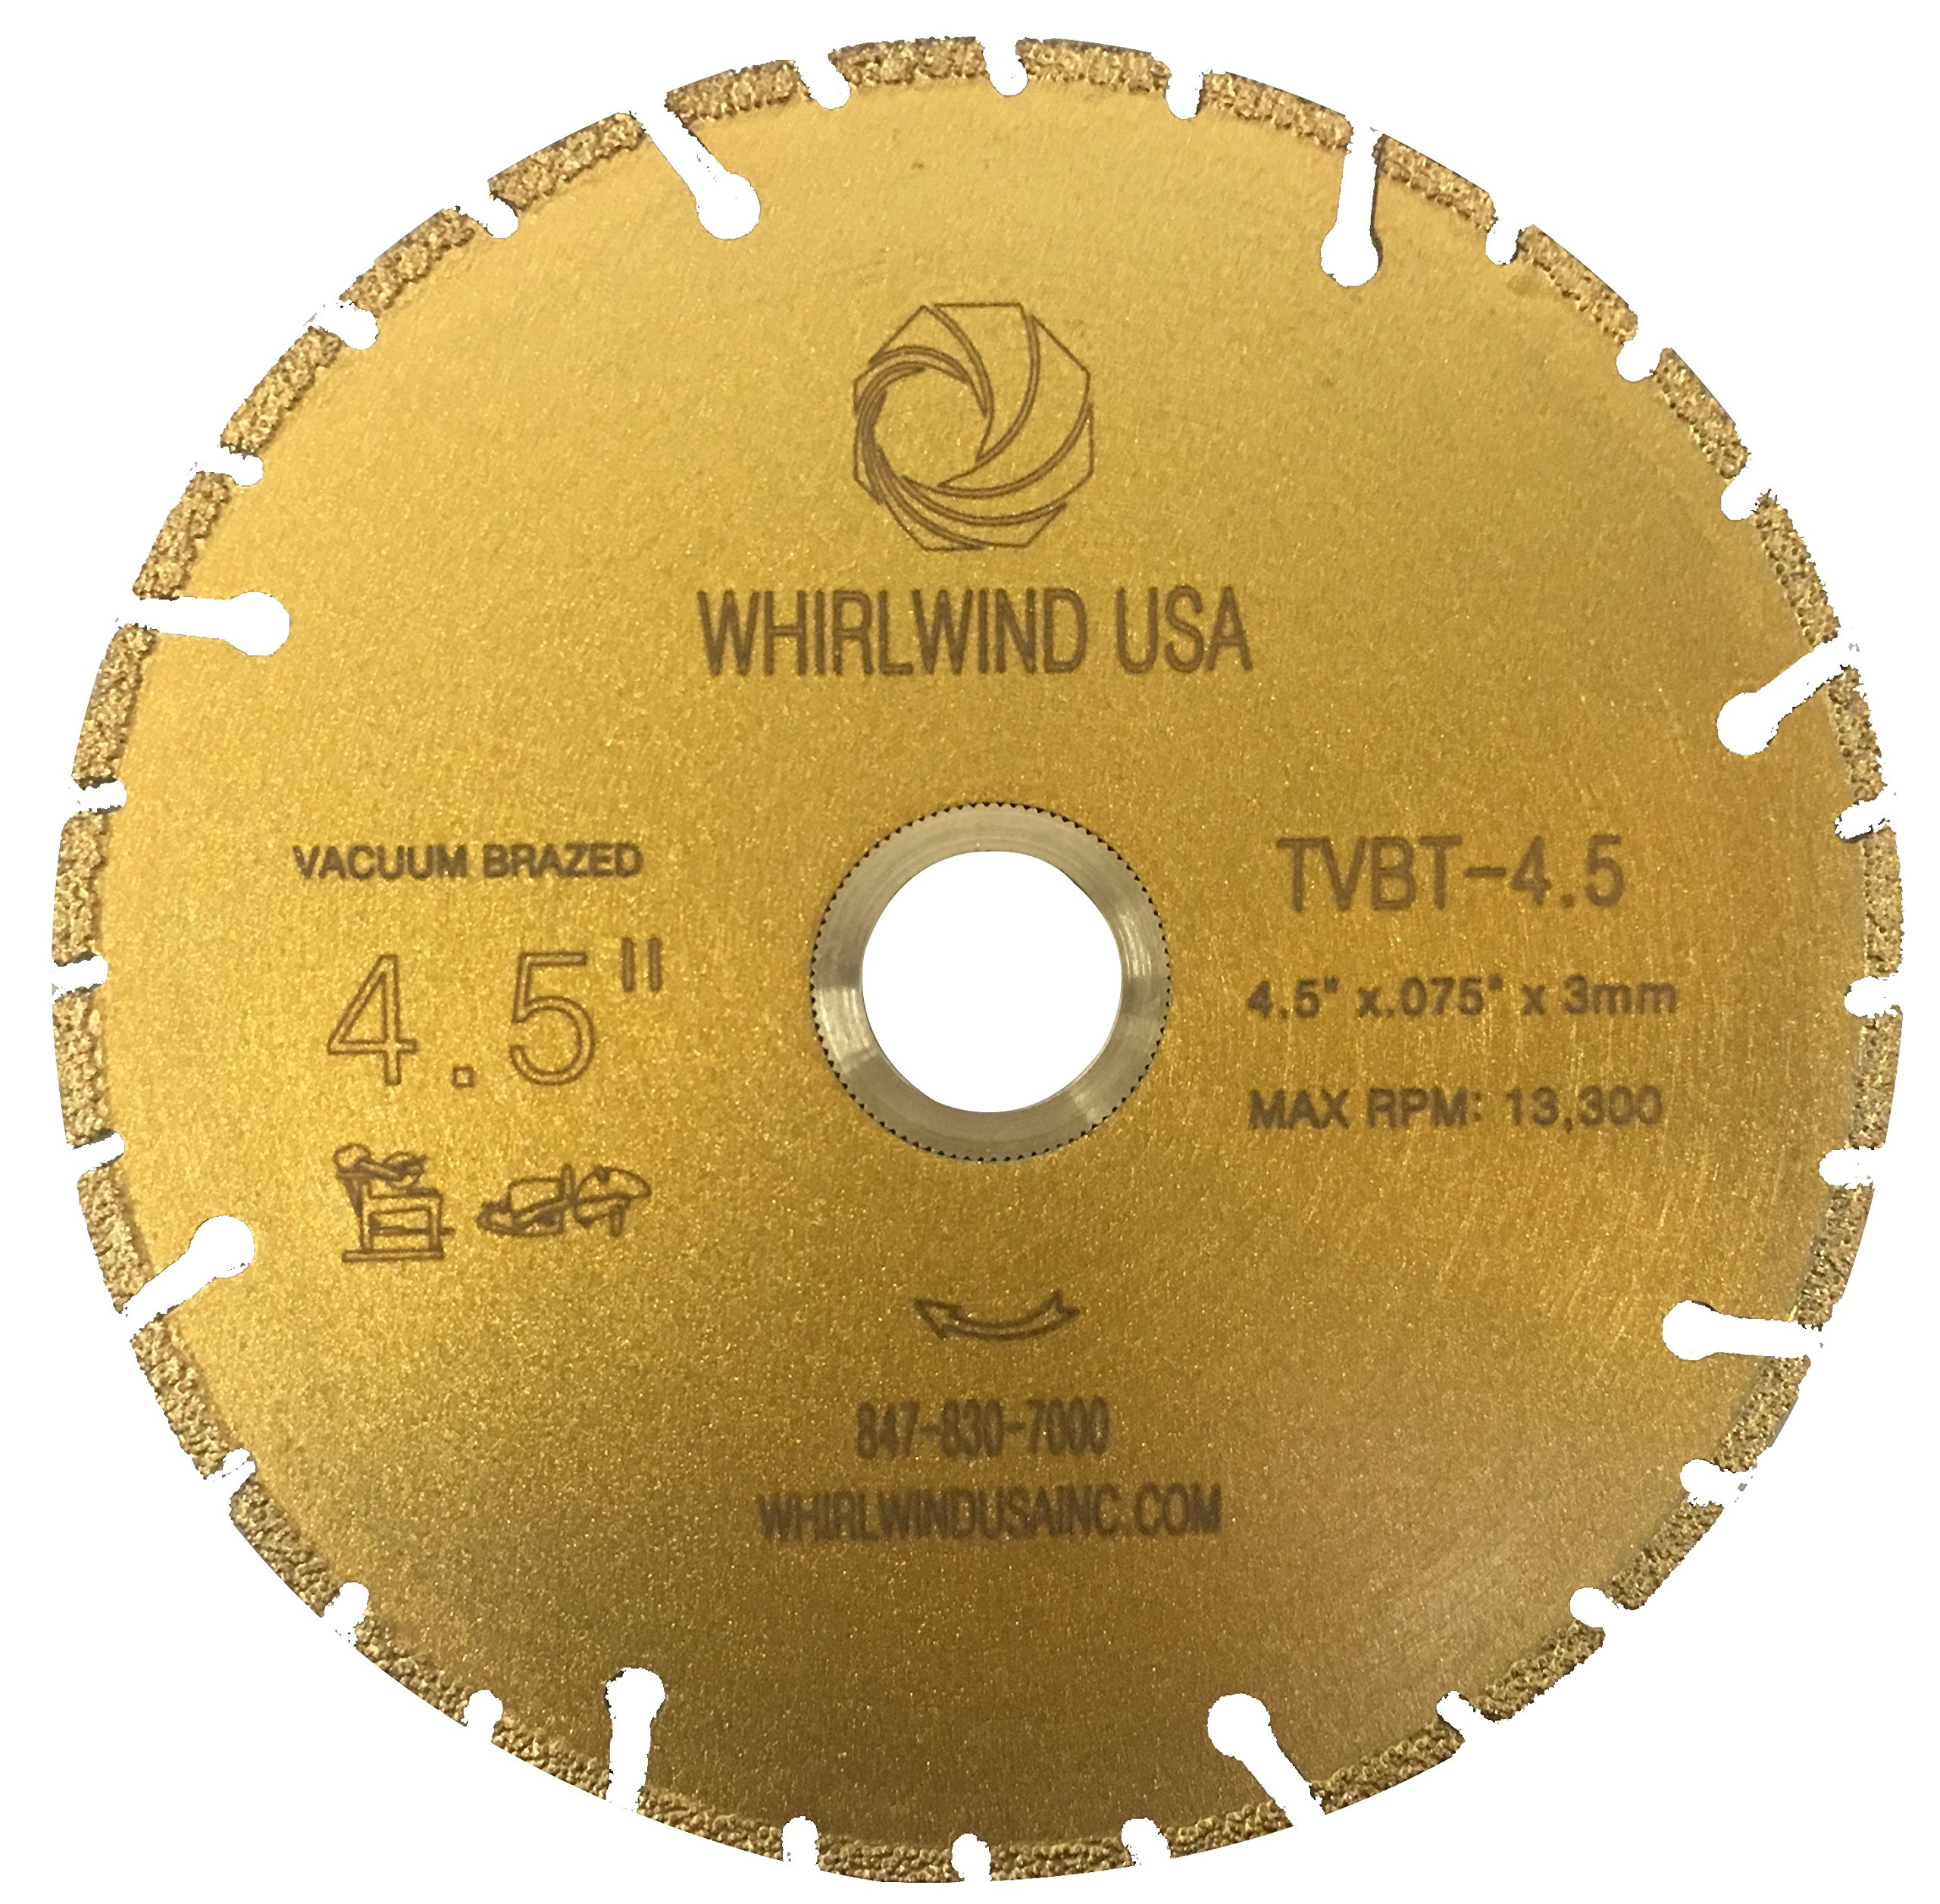 Whirlwind USA TVBT 4.5 in. All Purpose Metal Cutting Dry or Wet Cutting Vacuum-Brazed Segmented Diamond Blades for Metal and Plastic Materials (Factory Direct Sale) (4.5'') by WHIRLWIND USA